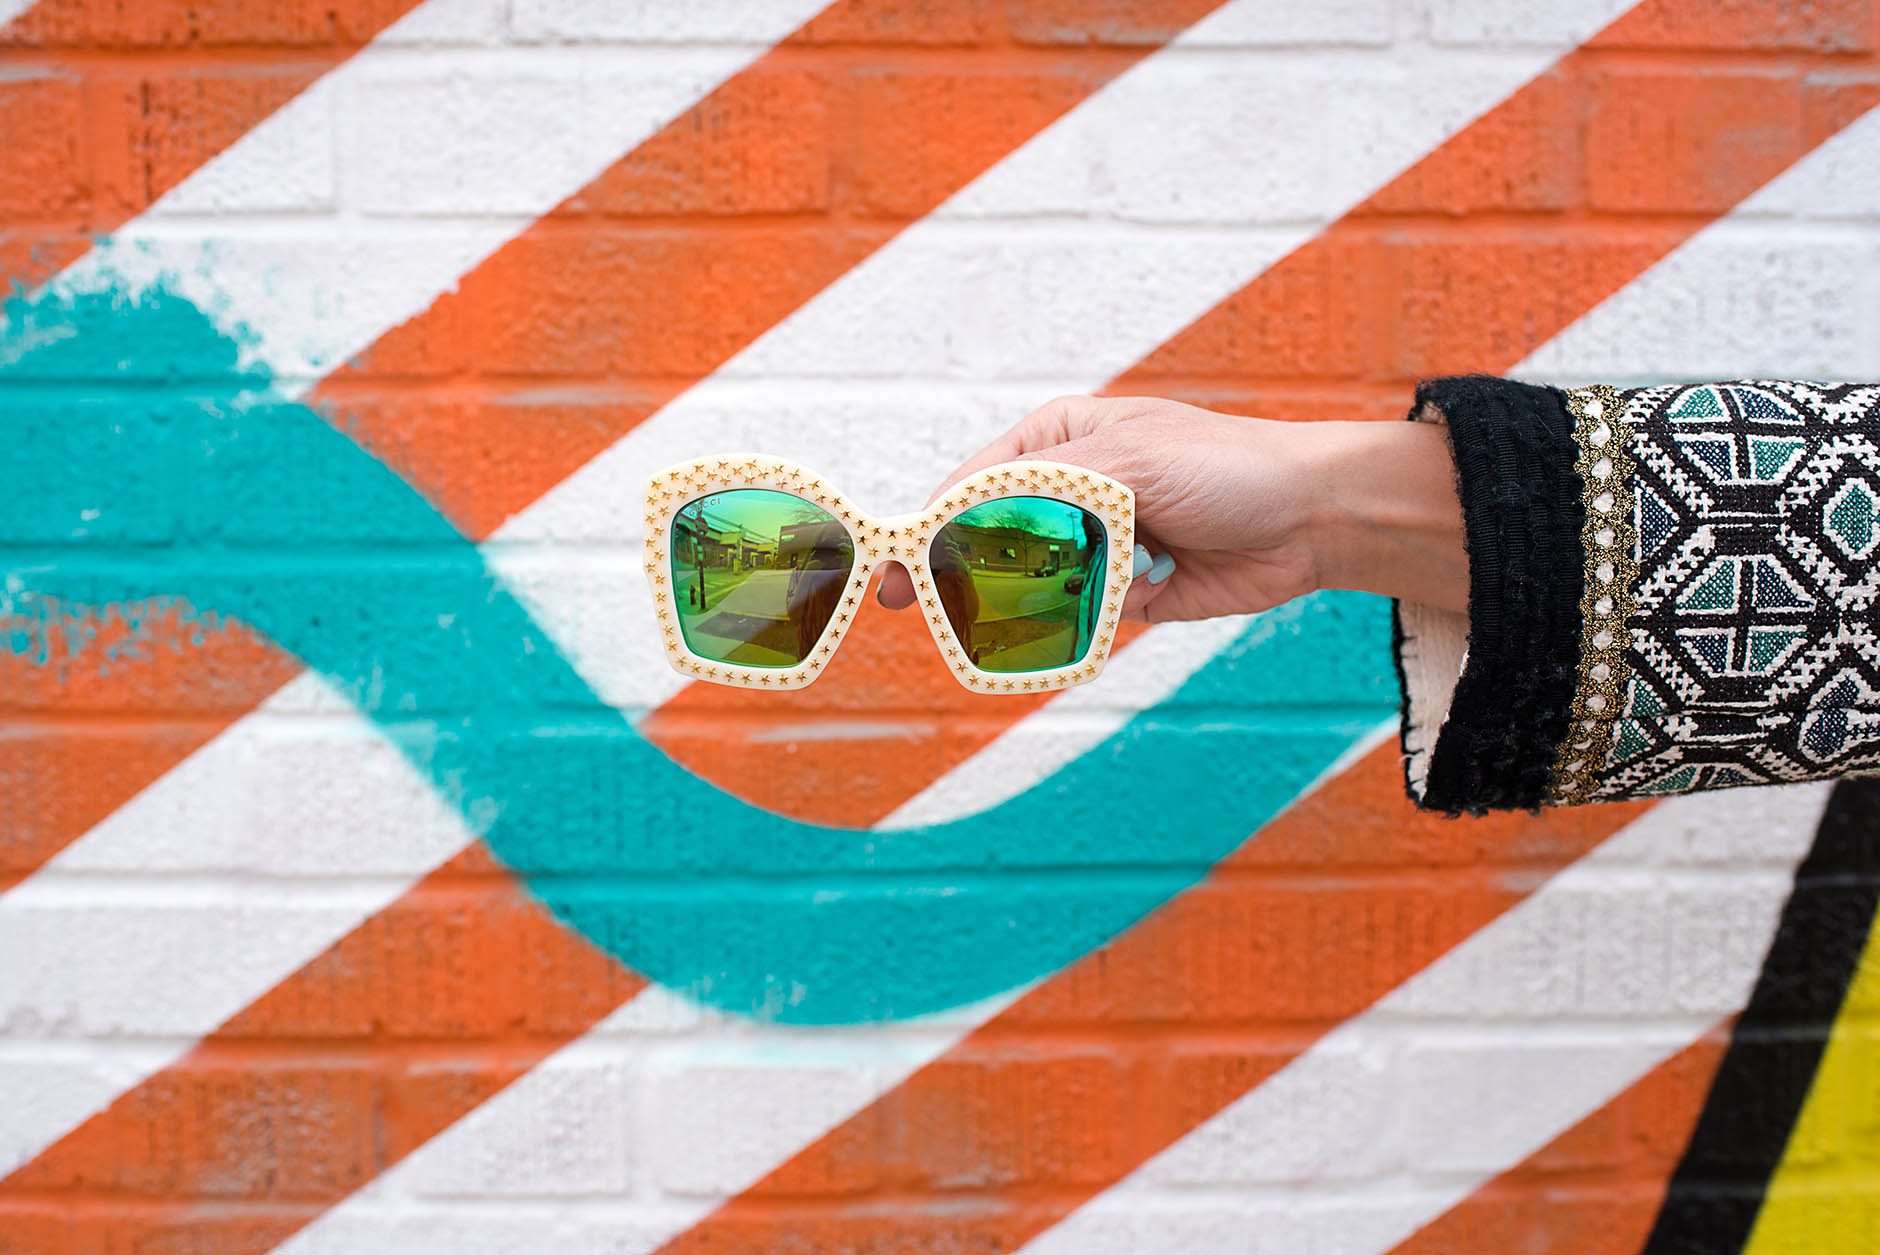 Anna Roufos Sosa of Noir Friday featuring Gucci sunglasses found on sale at MatchesFashion.com.